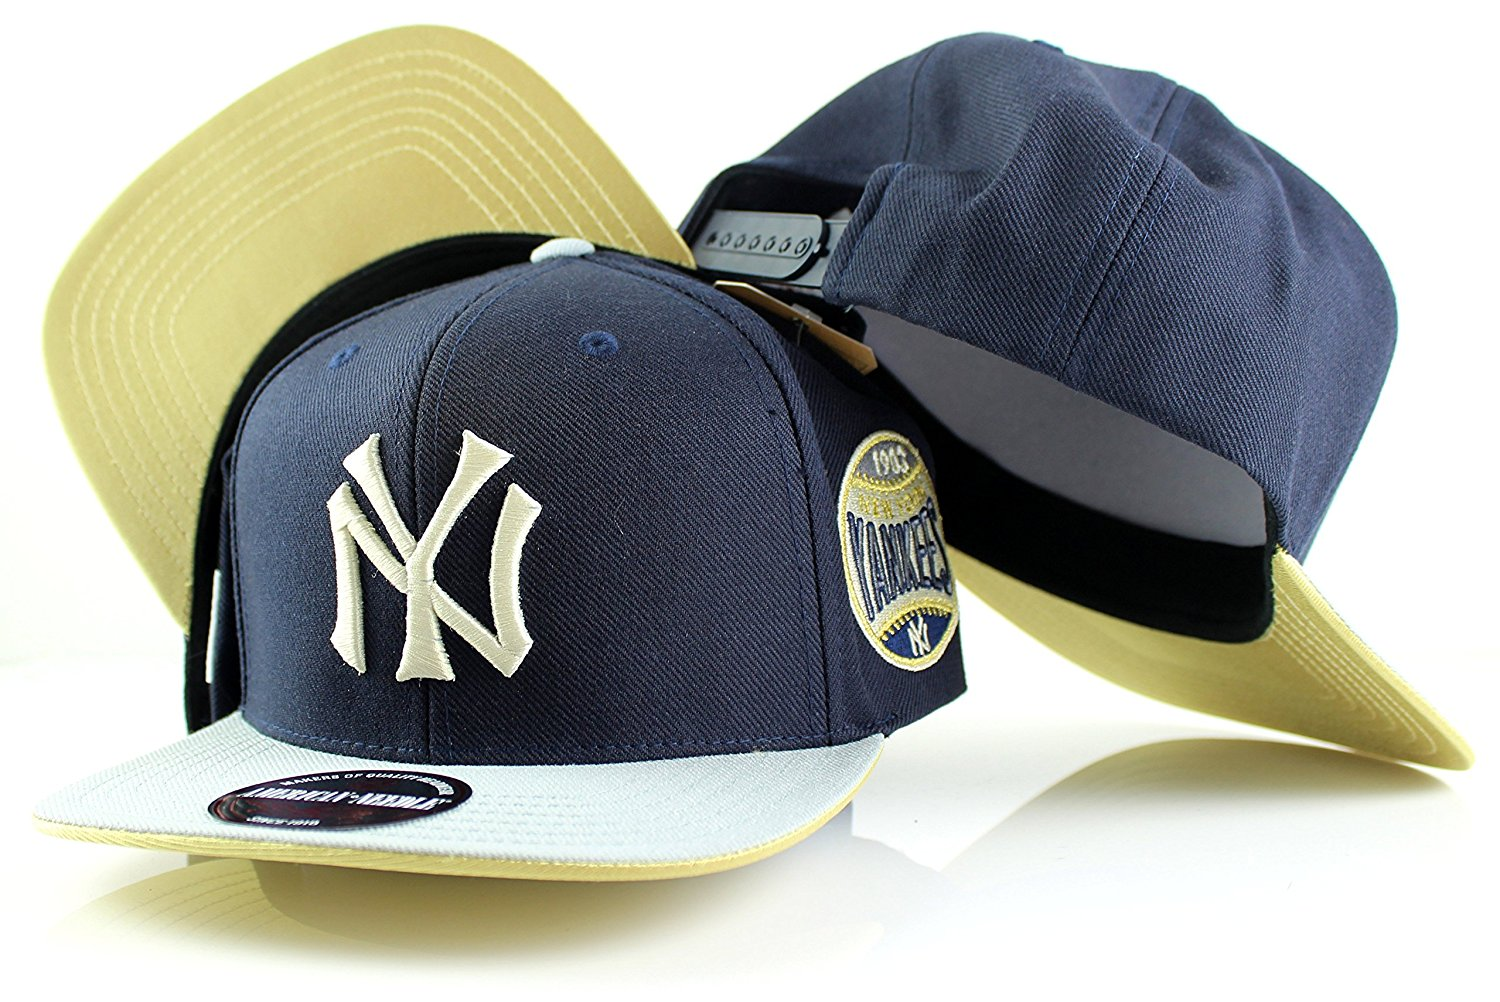 1d86add27b6 Get Quotations · MLB American Needle Limited Edition Chipper Gold Visor  Adjustable Snapback Hat (New York Yankees)